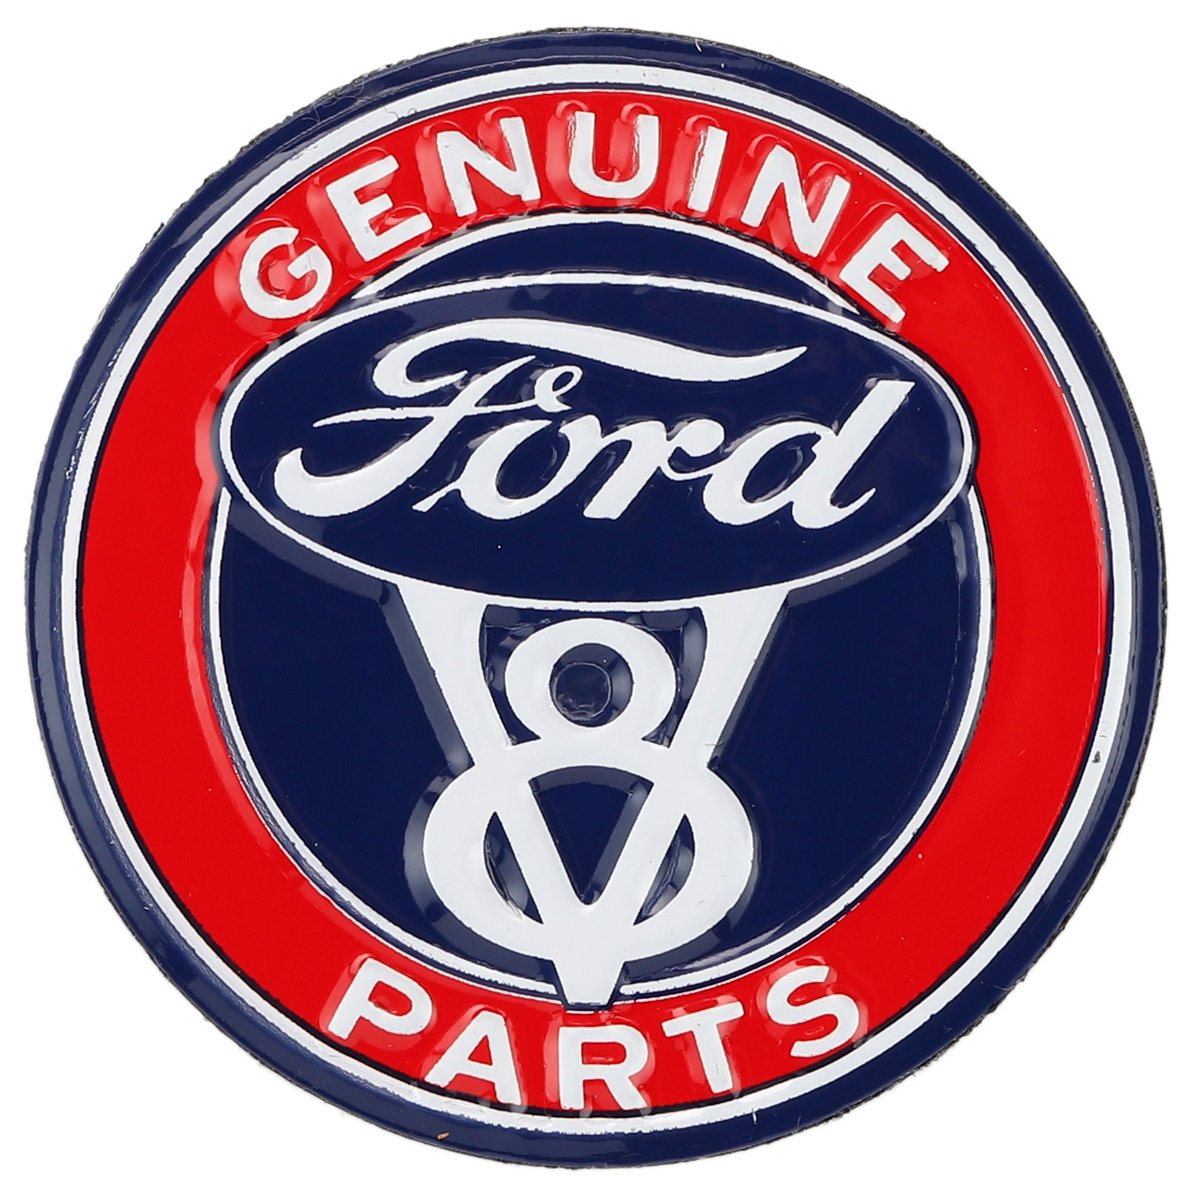 Open Road Brands Ford Blue and Red High Gloss Tin Metal Button Magnet - an Officially Licensed Product Great Small Gift and Addition to Add What You Love to Your Home/Garage Decor